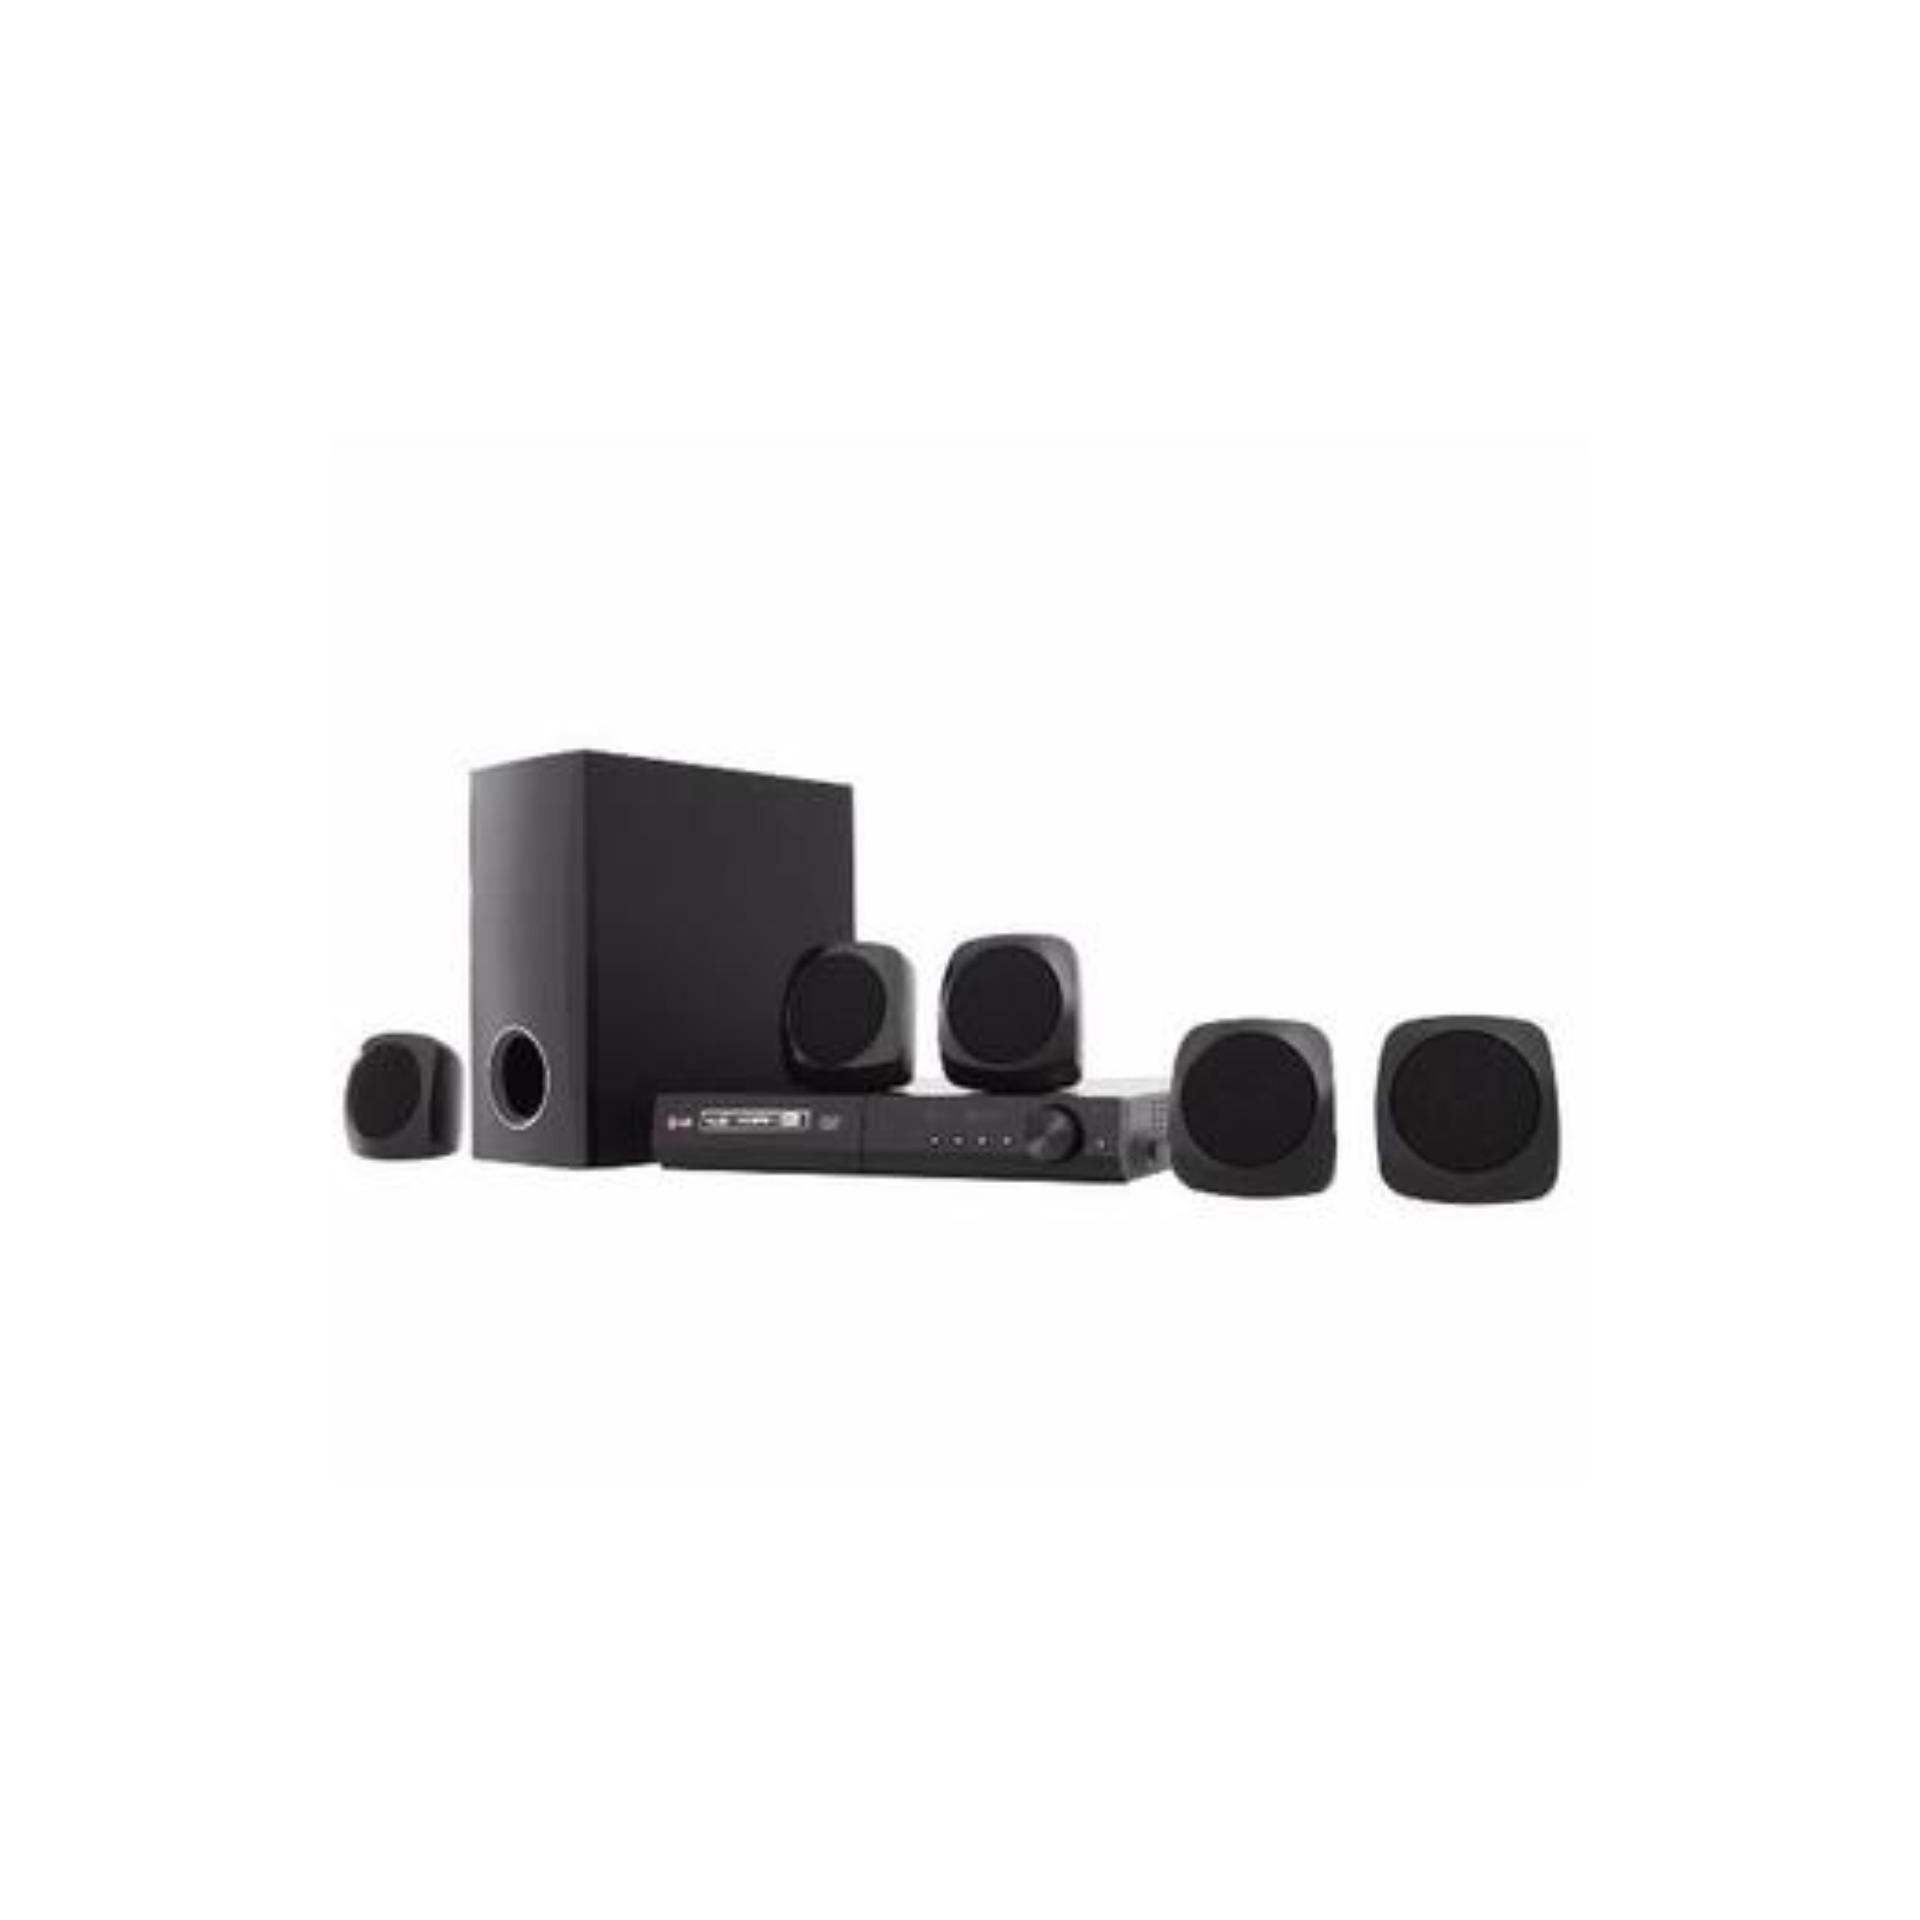 Panasonic Sc Xh105 51 Channel Home Theater System With 1080p Up Polytron Dtib 3500 Hitam In Malaysia Source Karaoke Yes Lg Lhd427 Khusus Jabodetabek